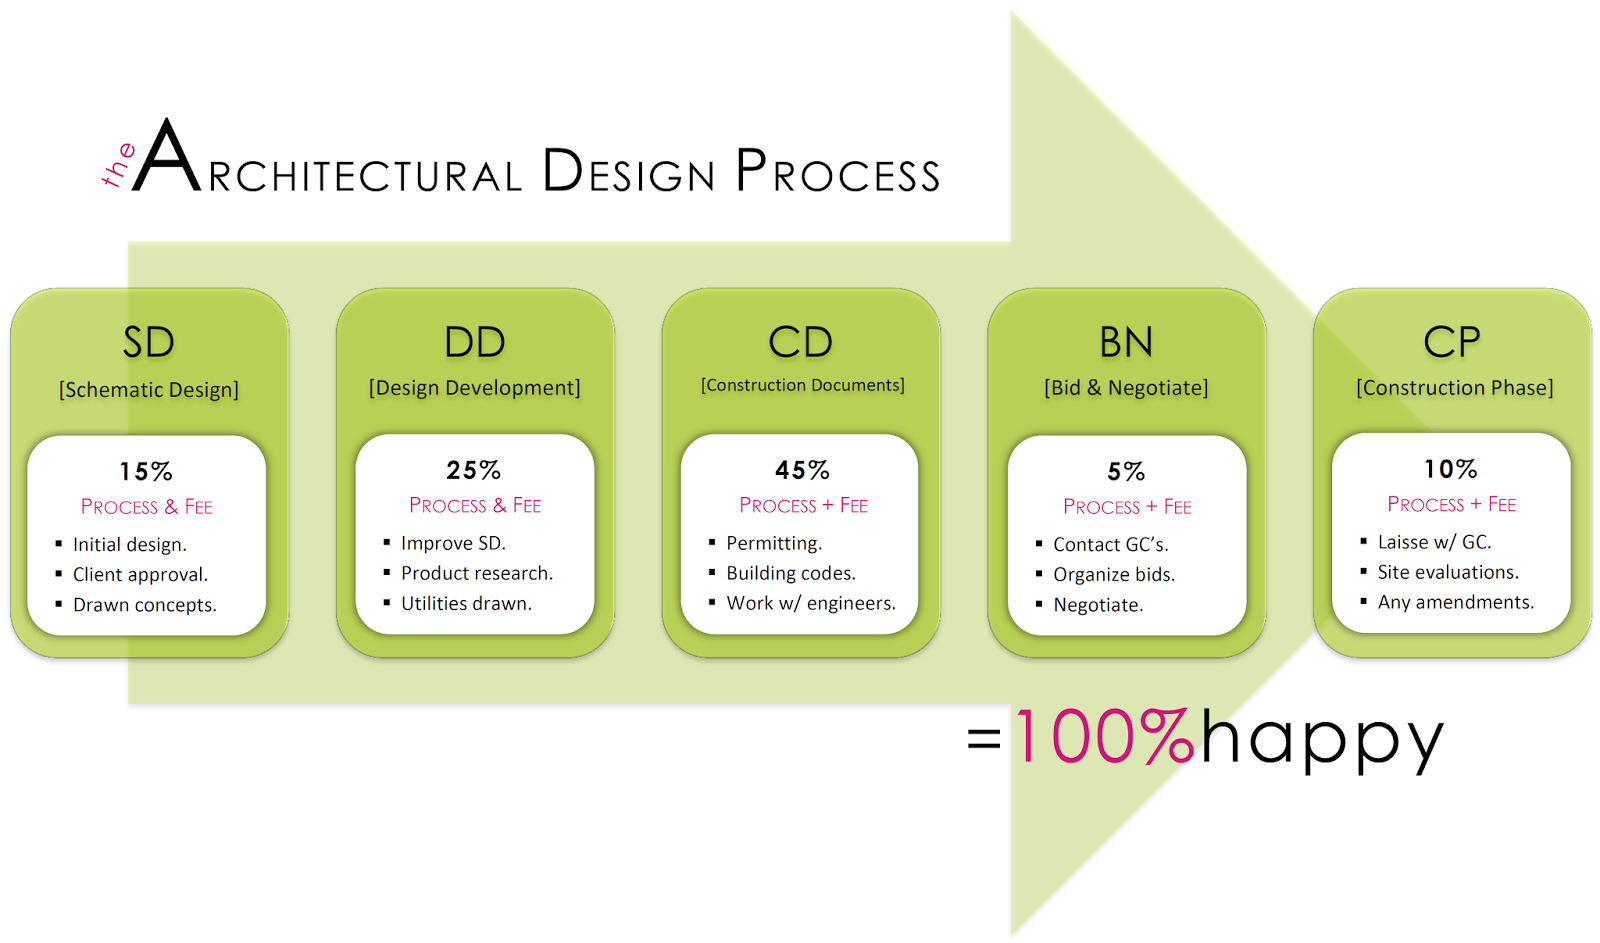 Captivating The Architectural Design Process